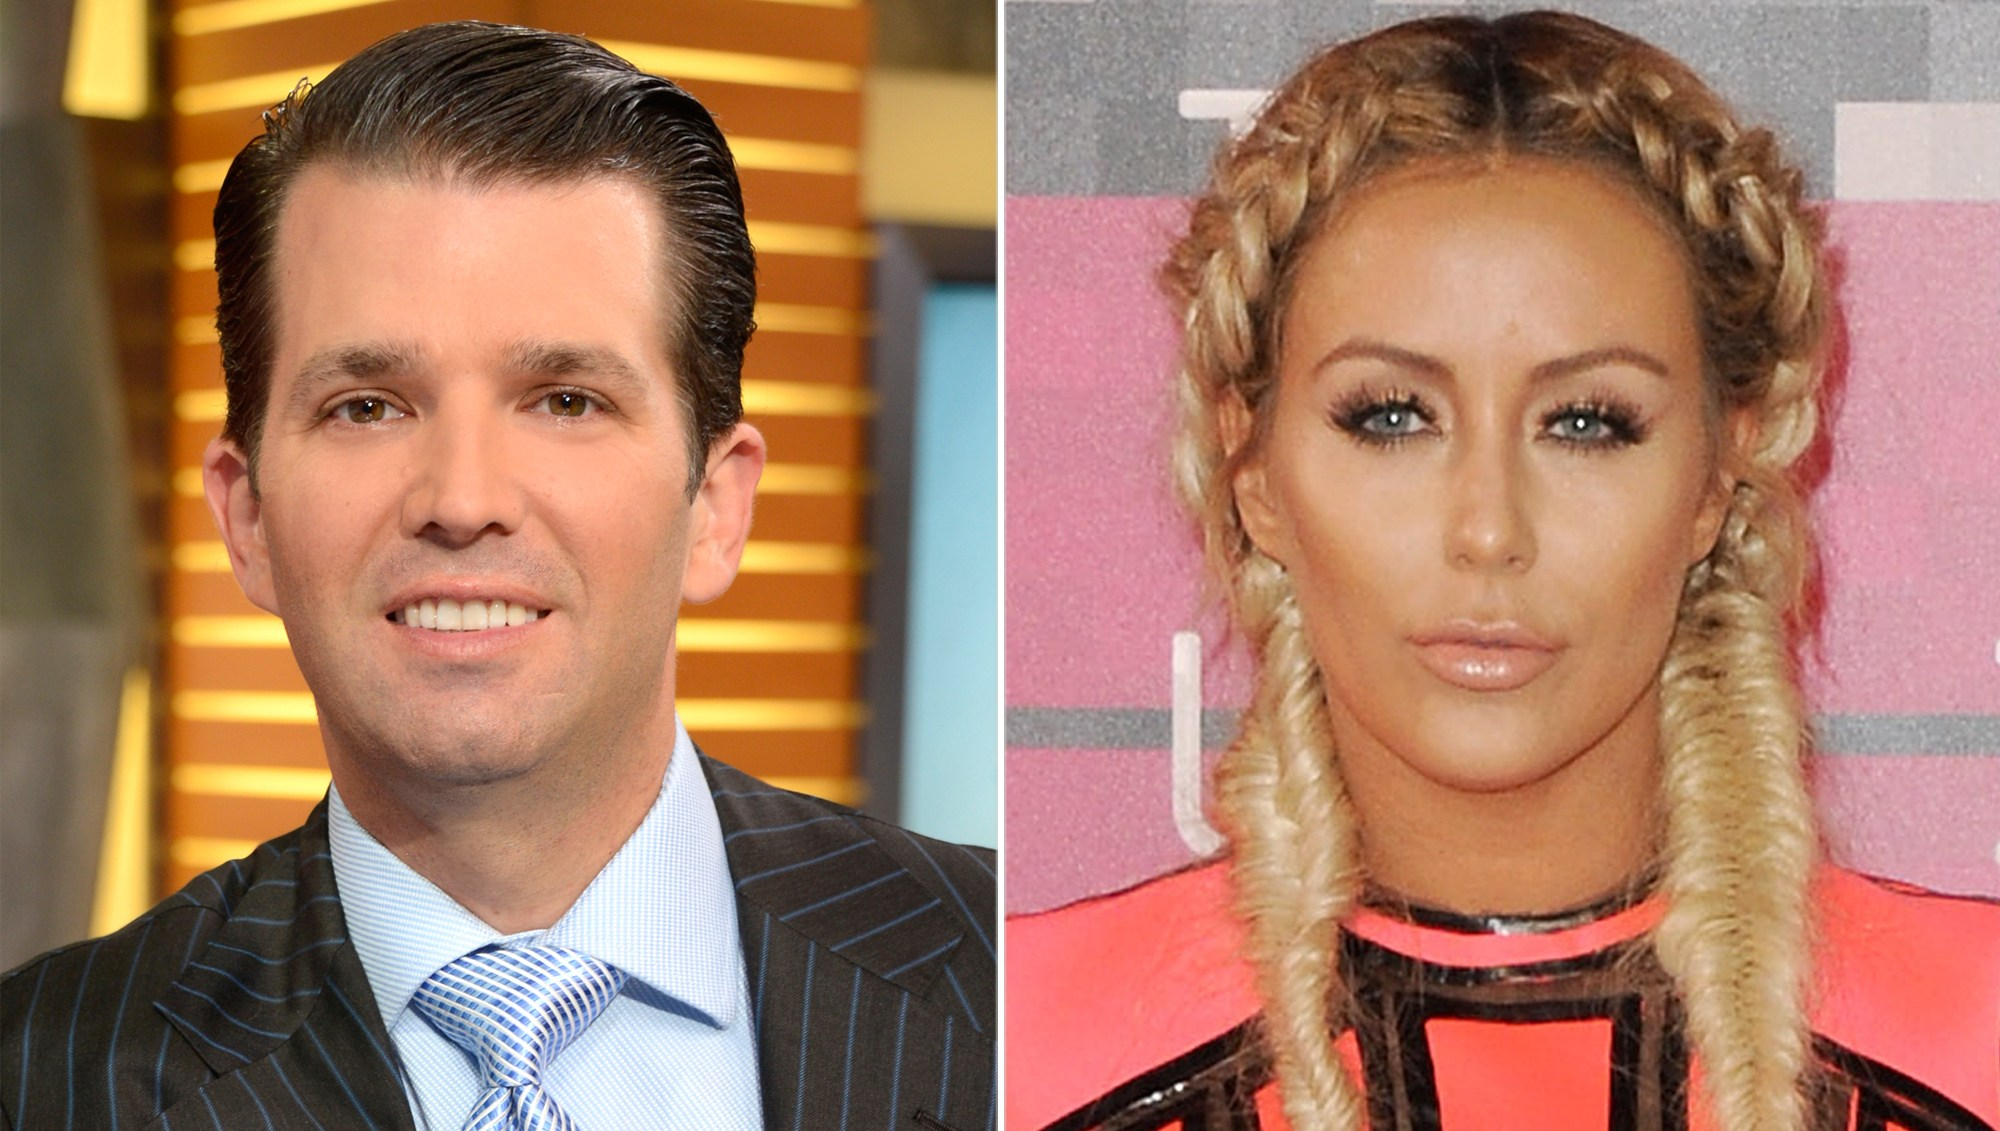 Donald Trump Jr. and Aubrey O'Day affair